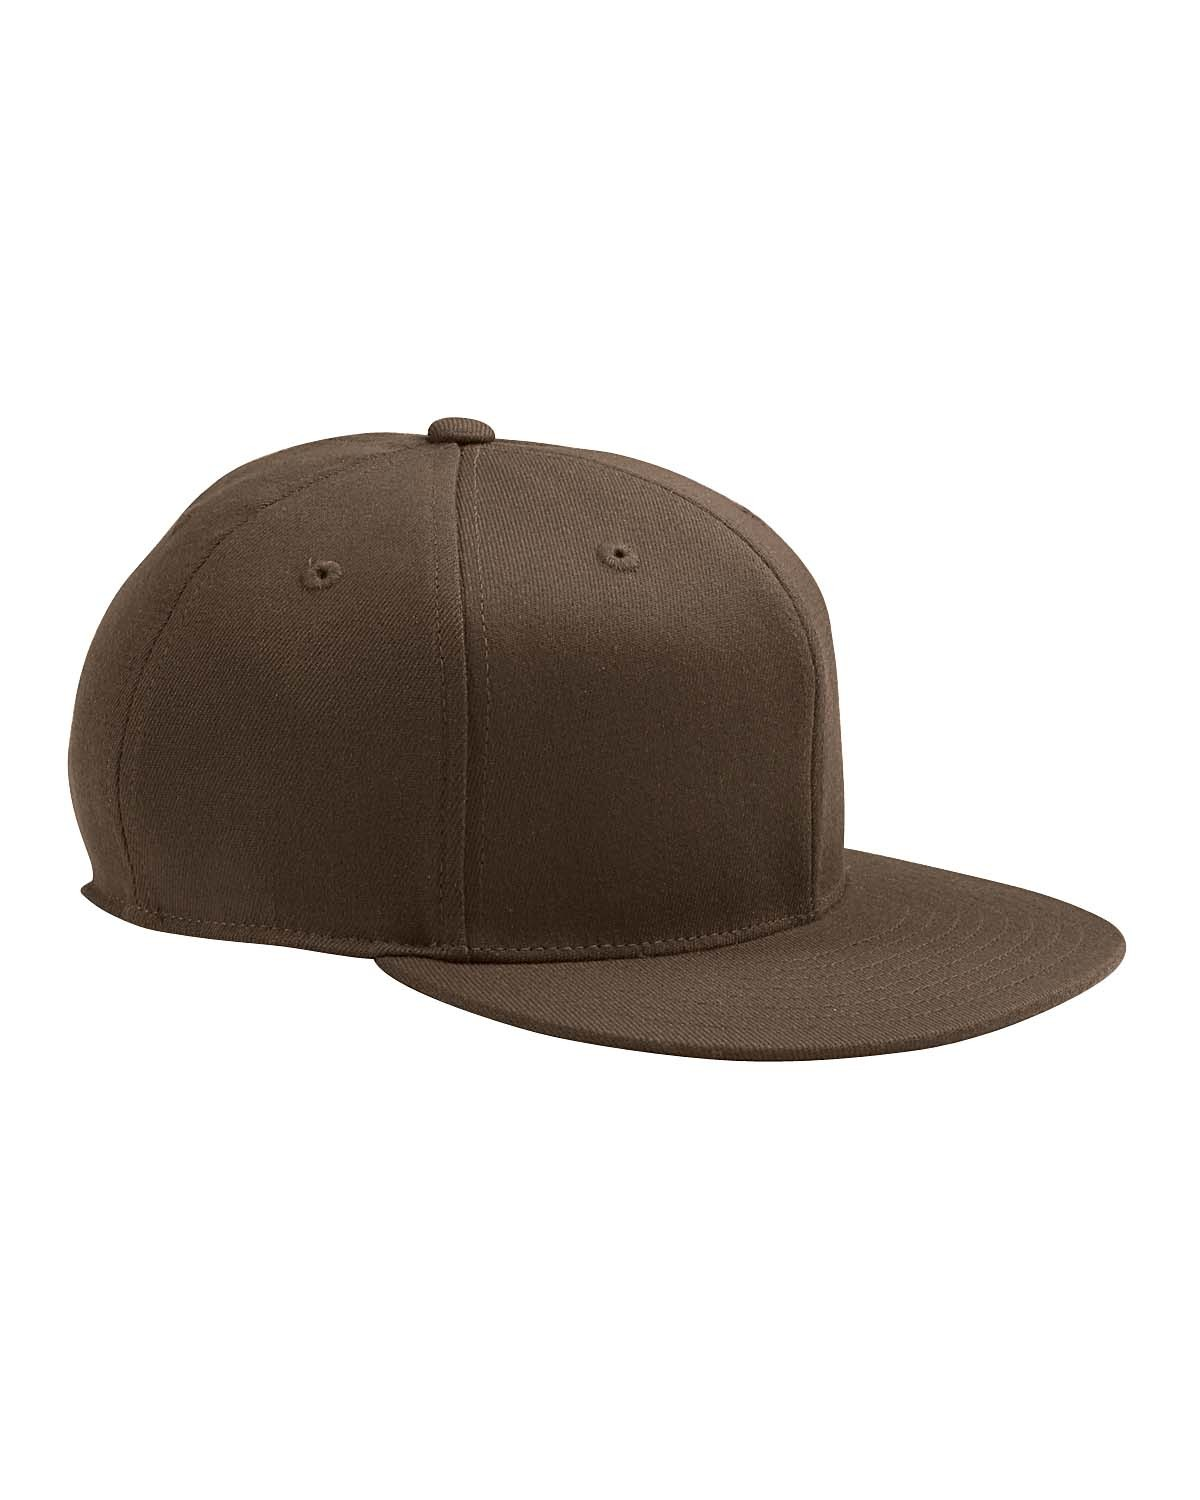 6210 Flexfit BROWN